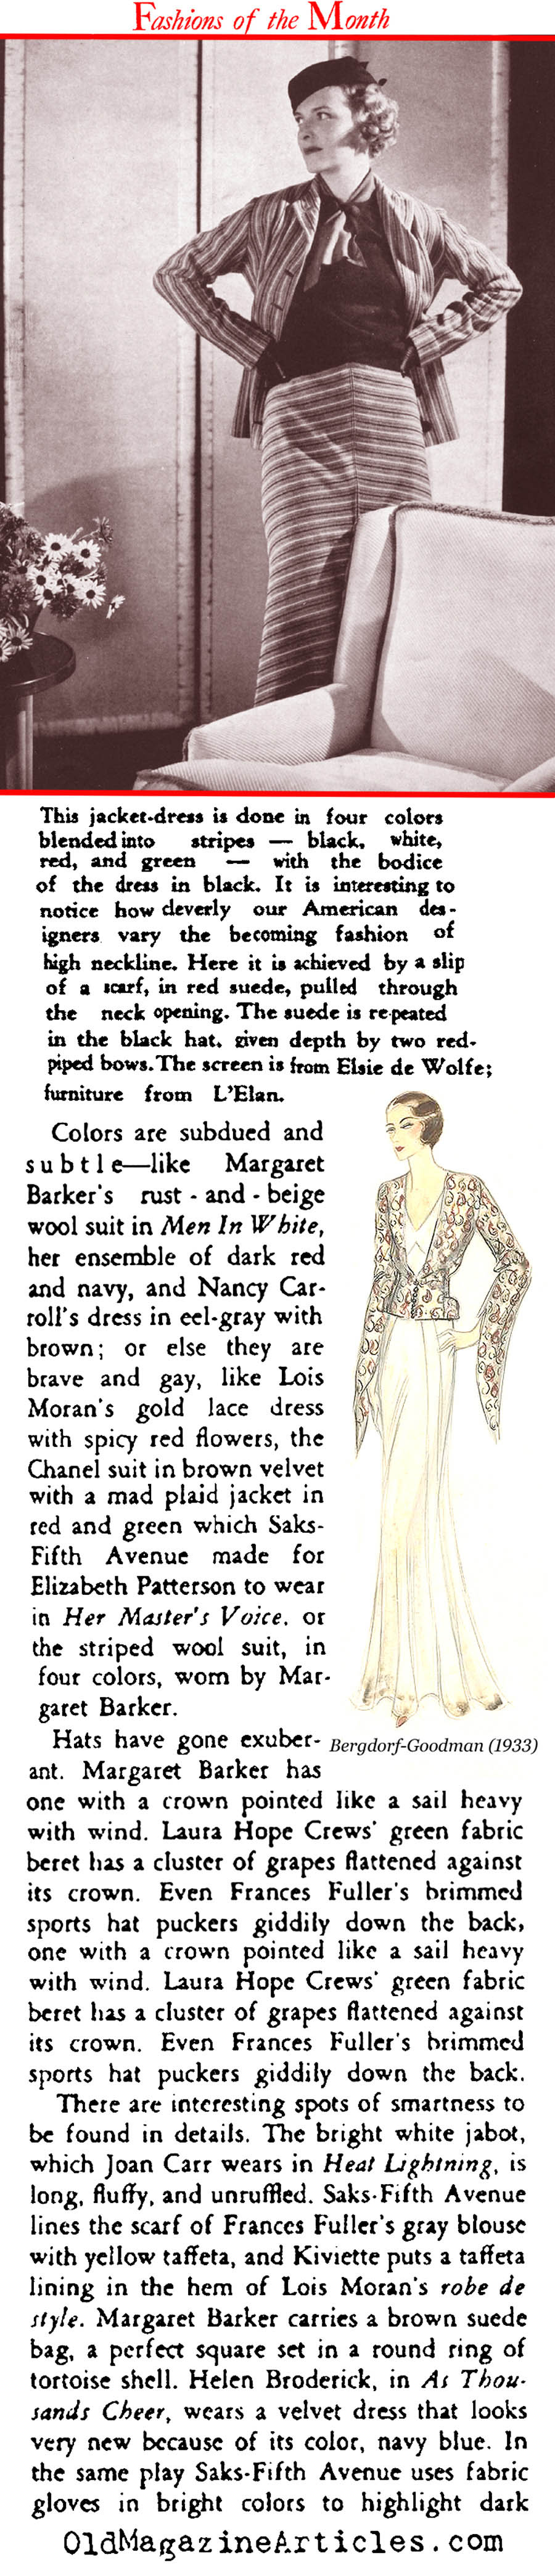 Broadway Costume Design for the Fall  (Stage Magazine, 1933)